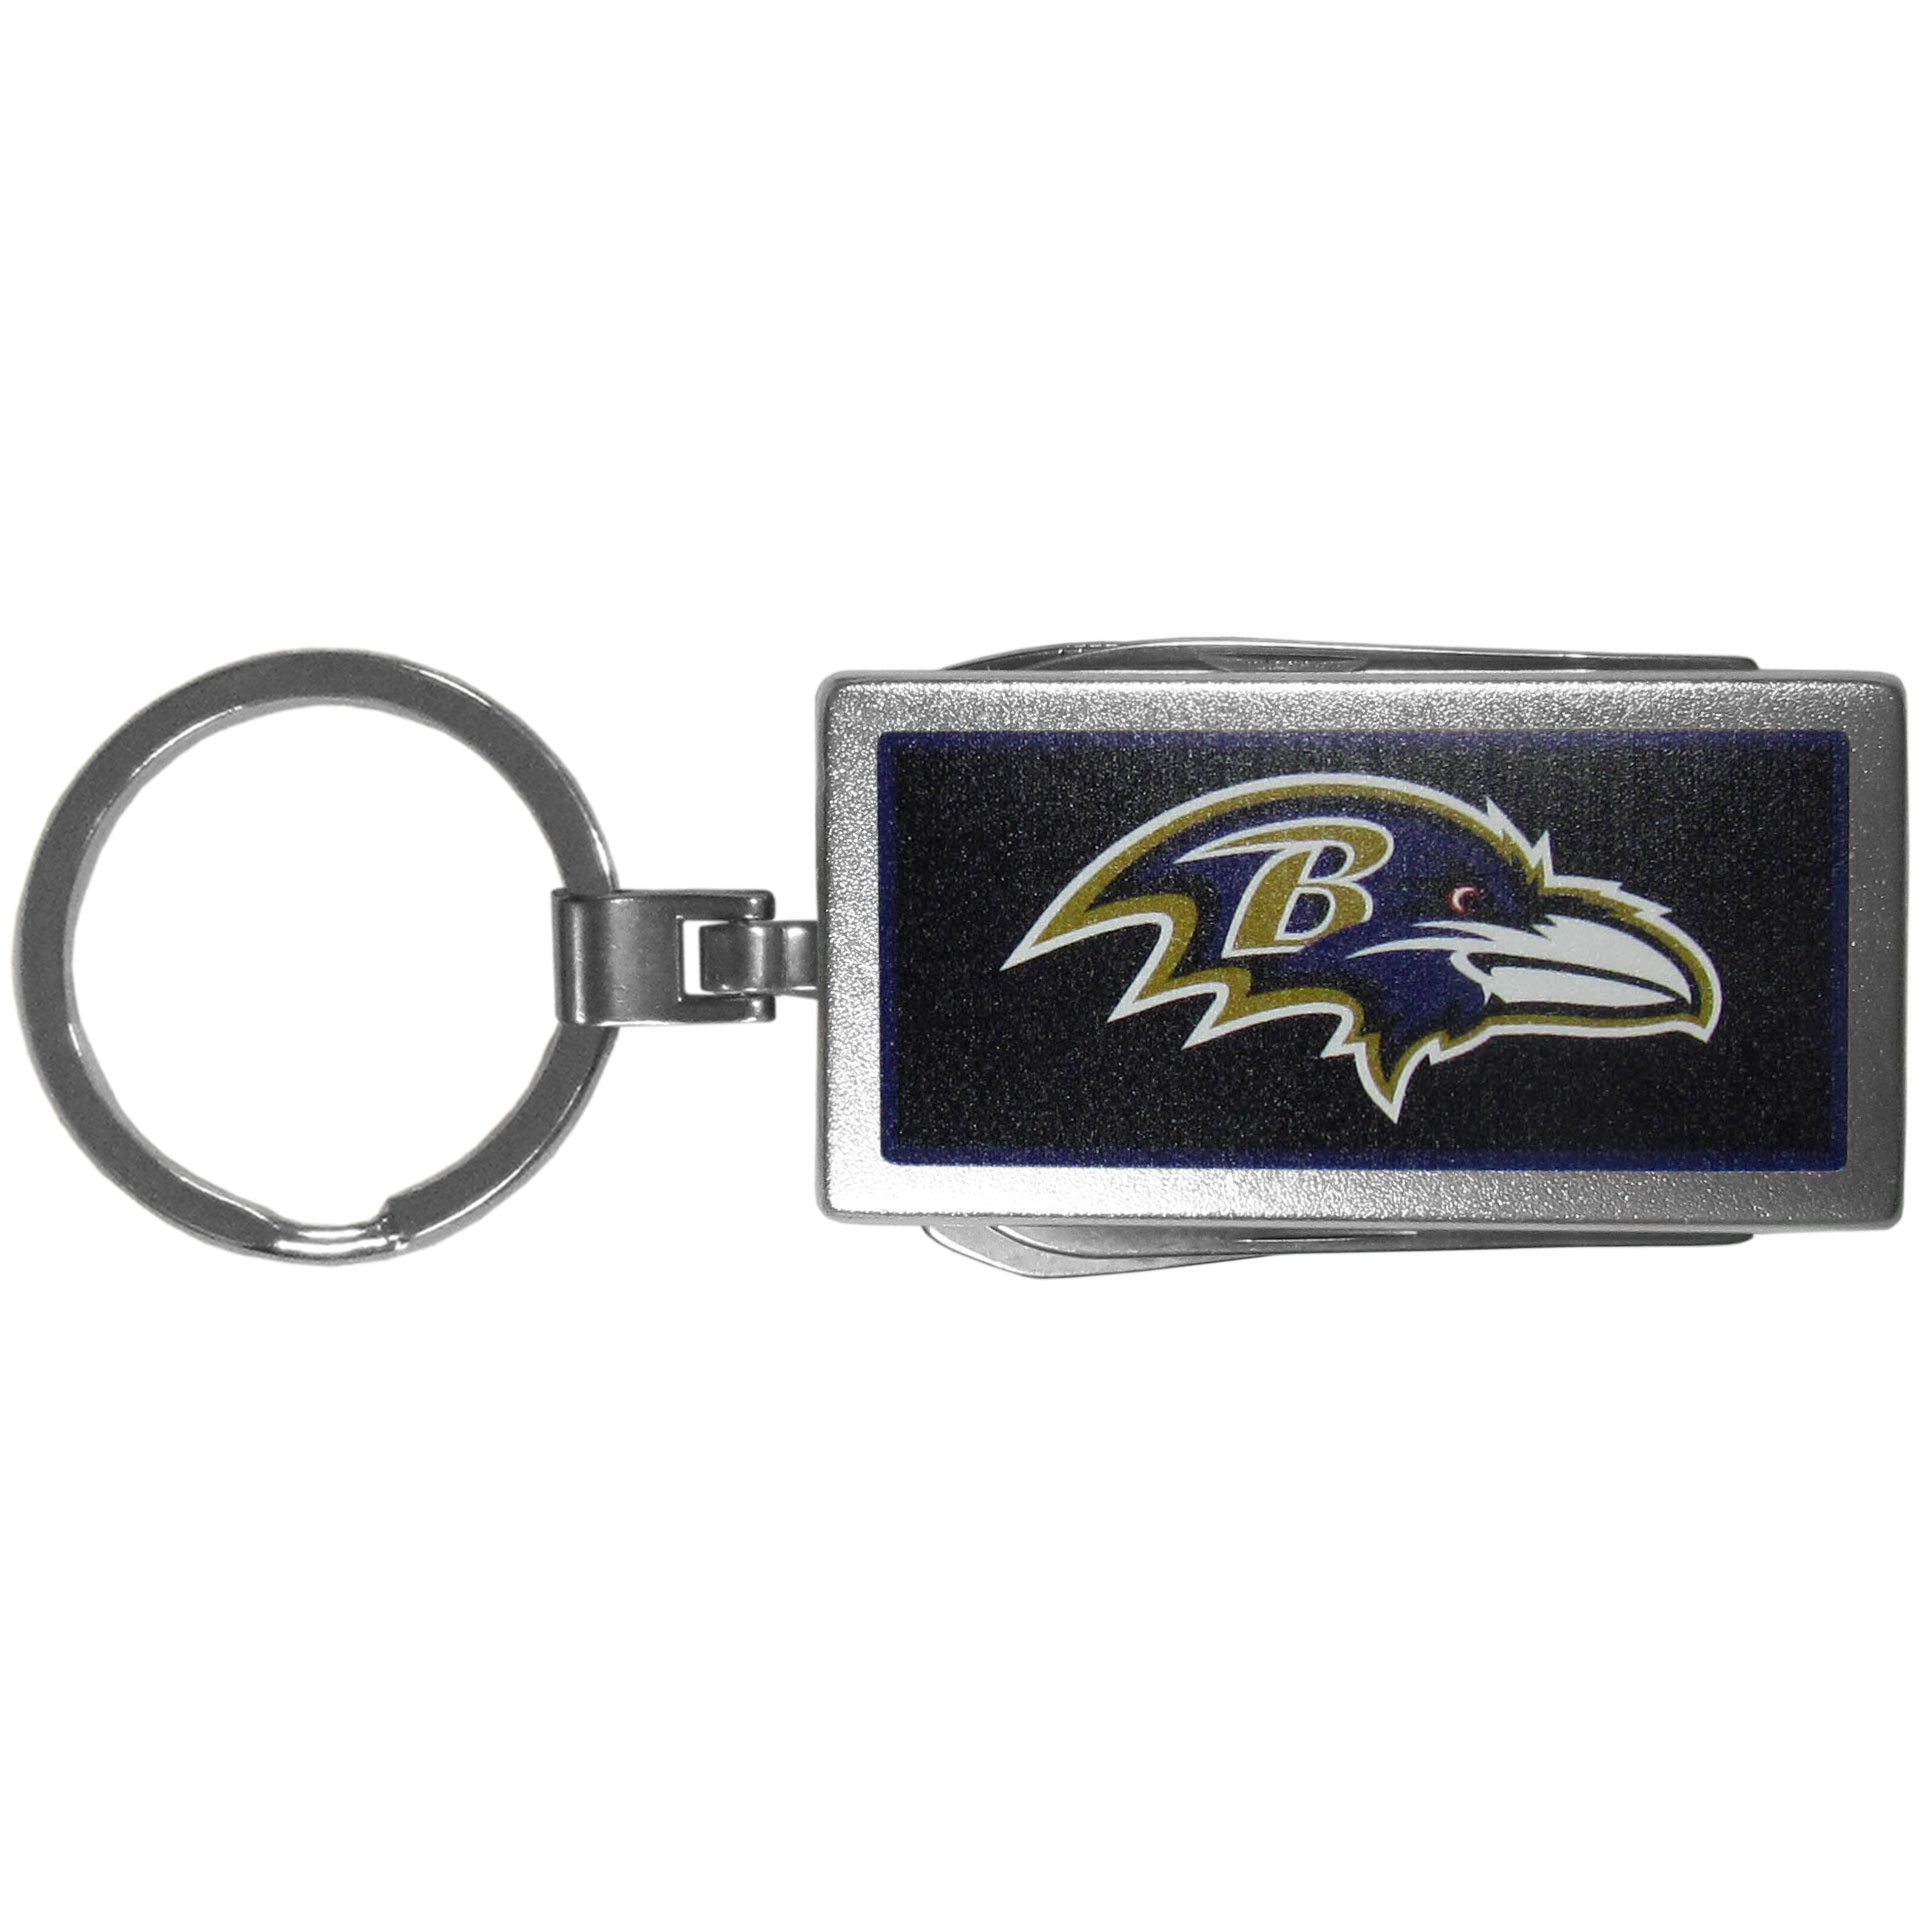 Baltimore Ravens Multi-tool Key Chain, Logo - Be the hero at the tailgate, camping, or on a Friday night with your Baltimore Ravens Multi-Tool Keychain which comes complete with bottle opener, scissors, knife, nail file and screw driver. Be it opening a package or a beverage Siskiyou's Multi-Tool Keychain goes wherever your keys do. The keychain hangs at 4 inches long when closed.